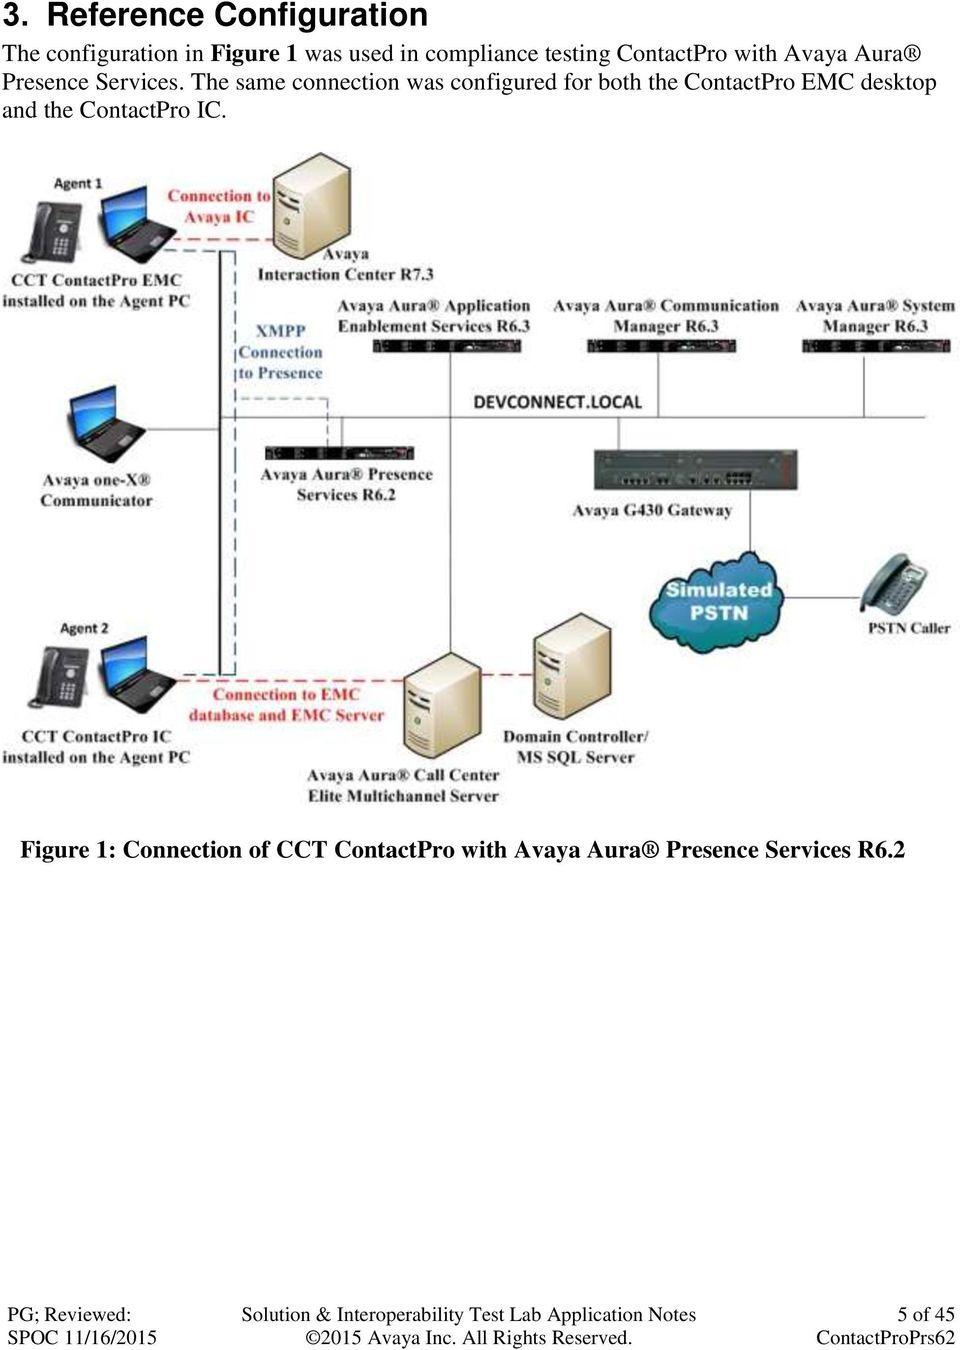 The same connection was configured for both the ContactPro EMC desktop and the